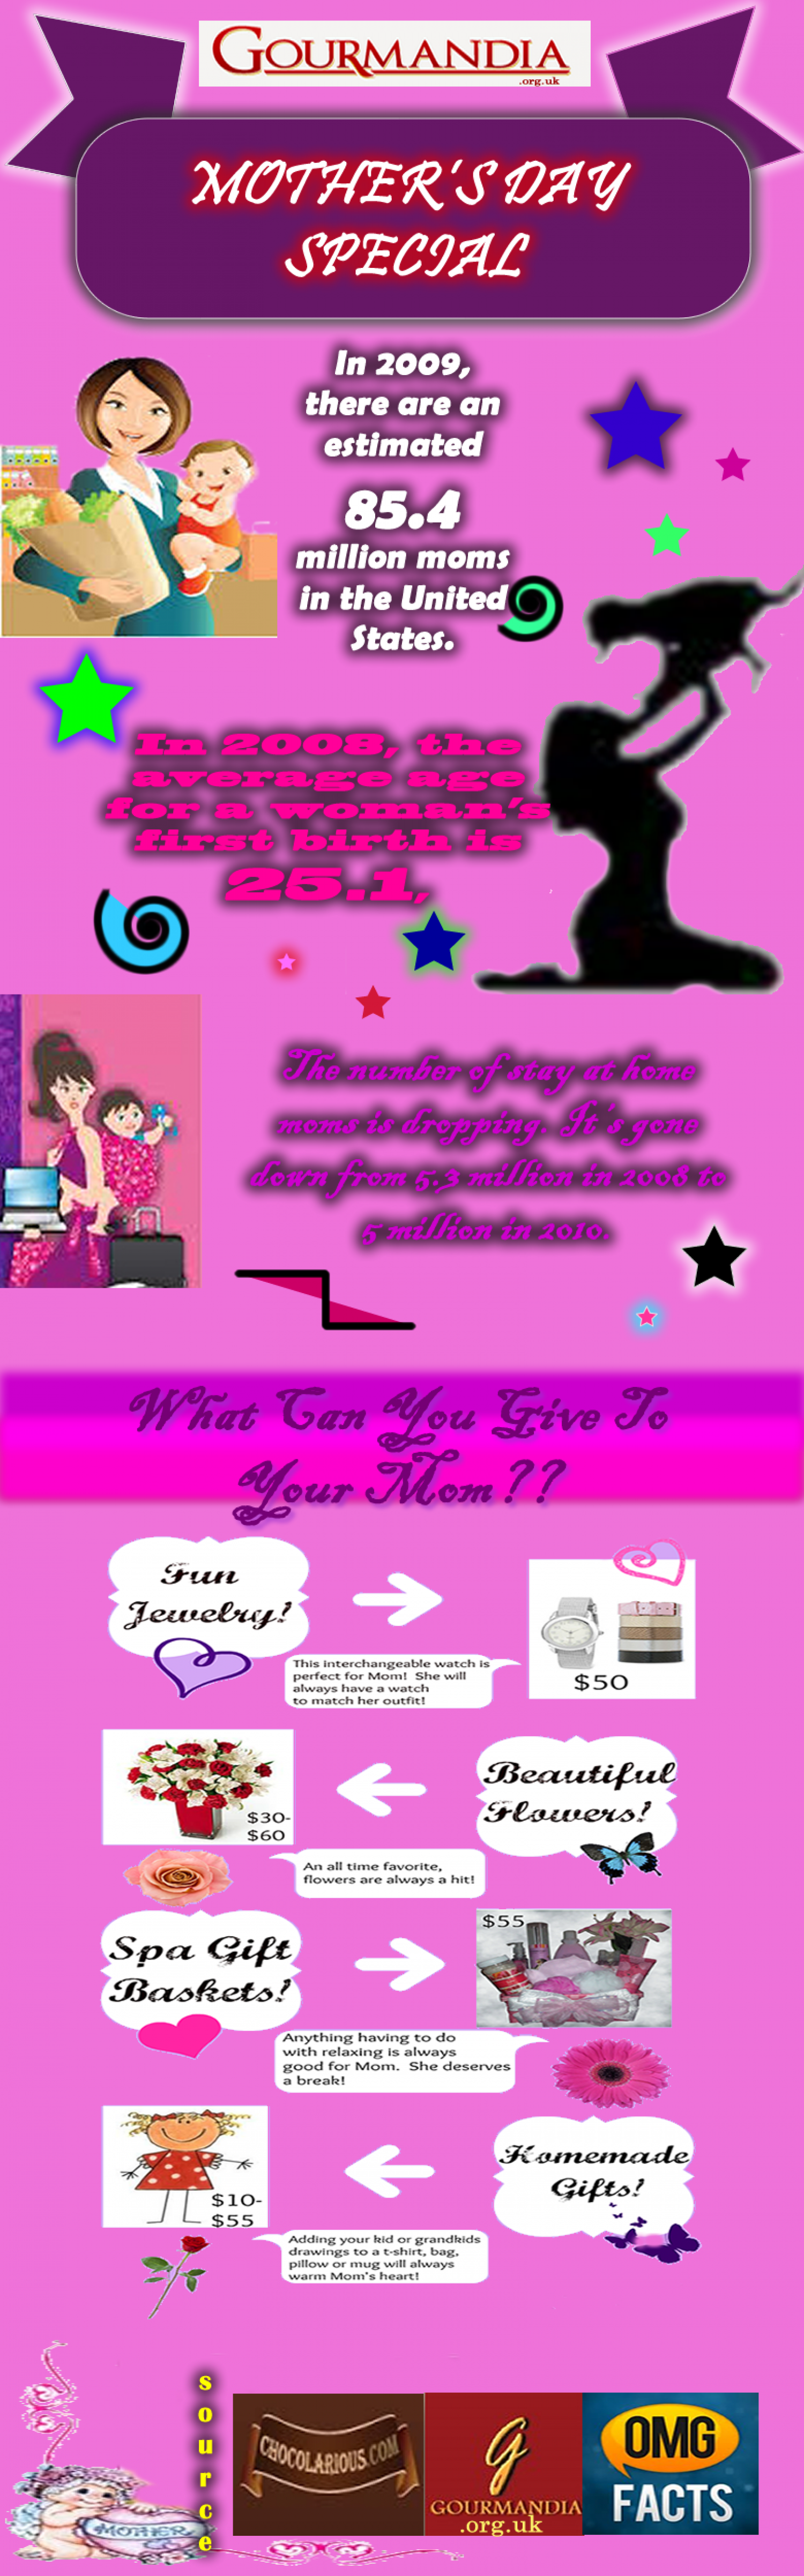 Motherly Facts Infographic